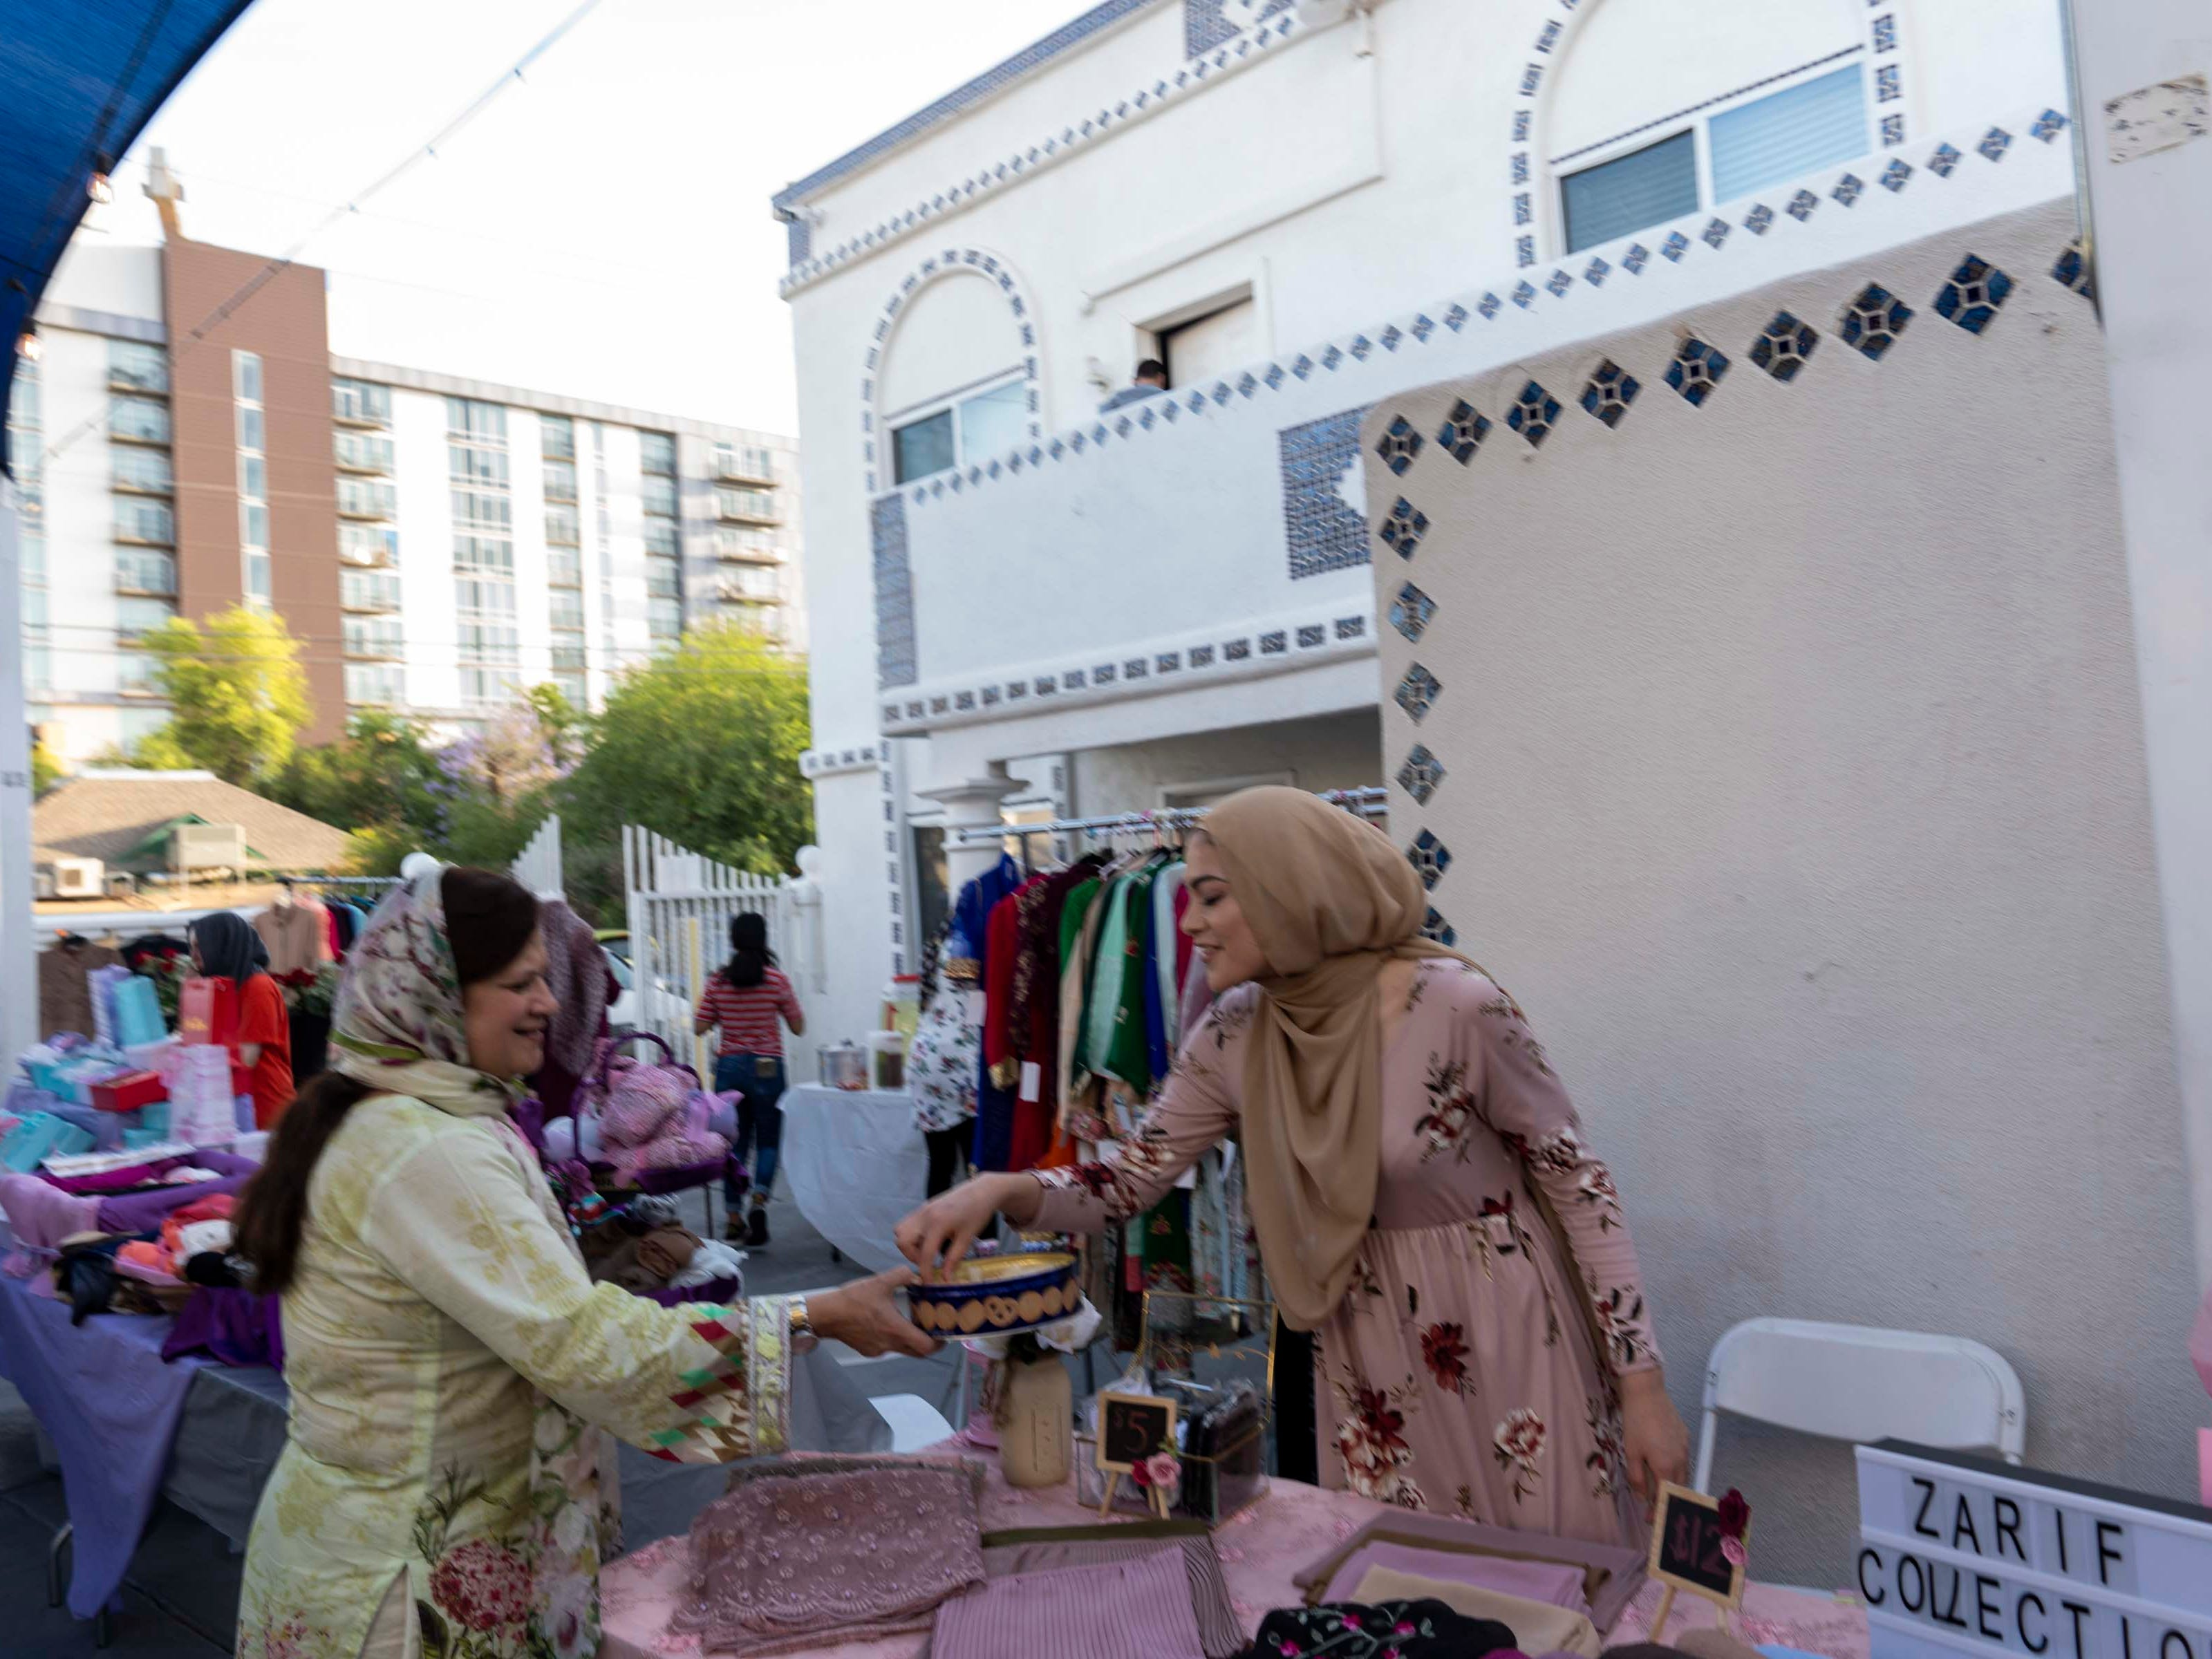 Fehmida Khamisani, on left, share sweets while she sells clothing to the Muslim community for Ramadan at Tempe Islamic Cultural Center.